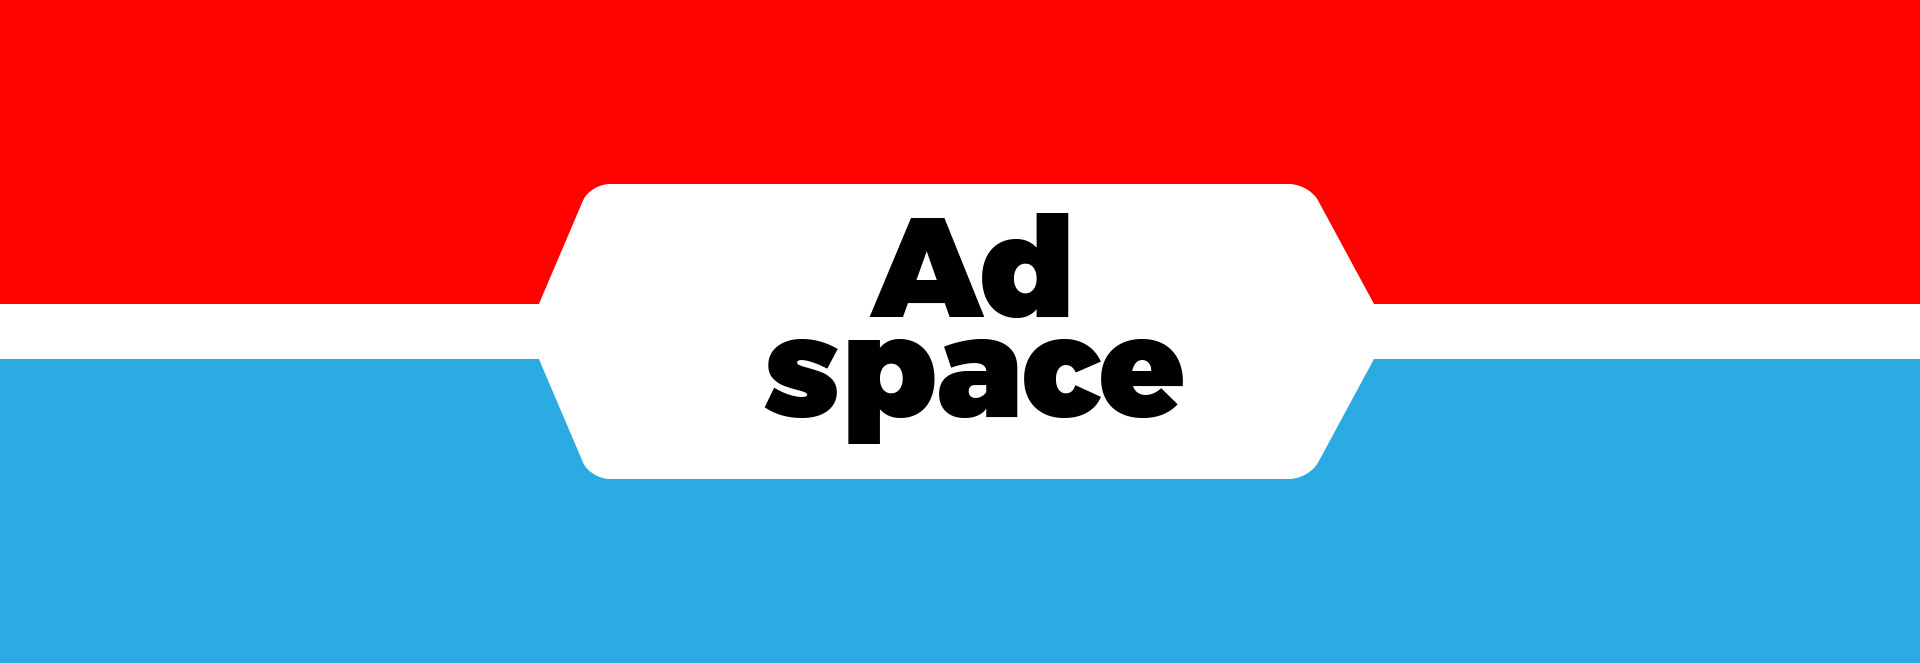 add space